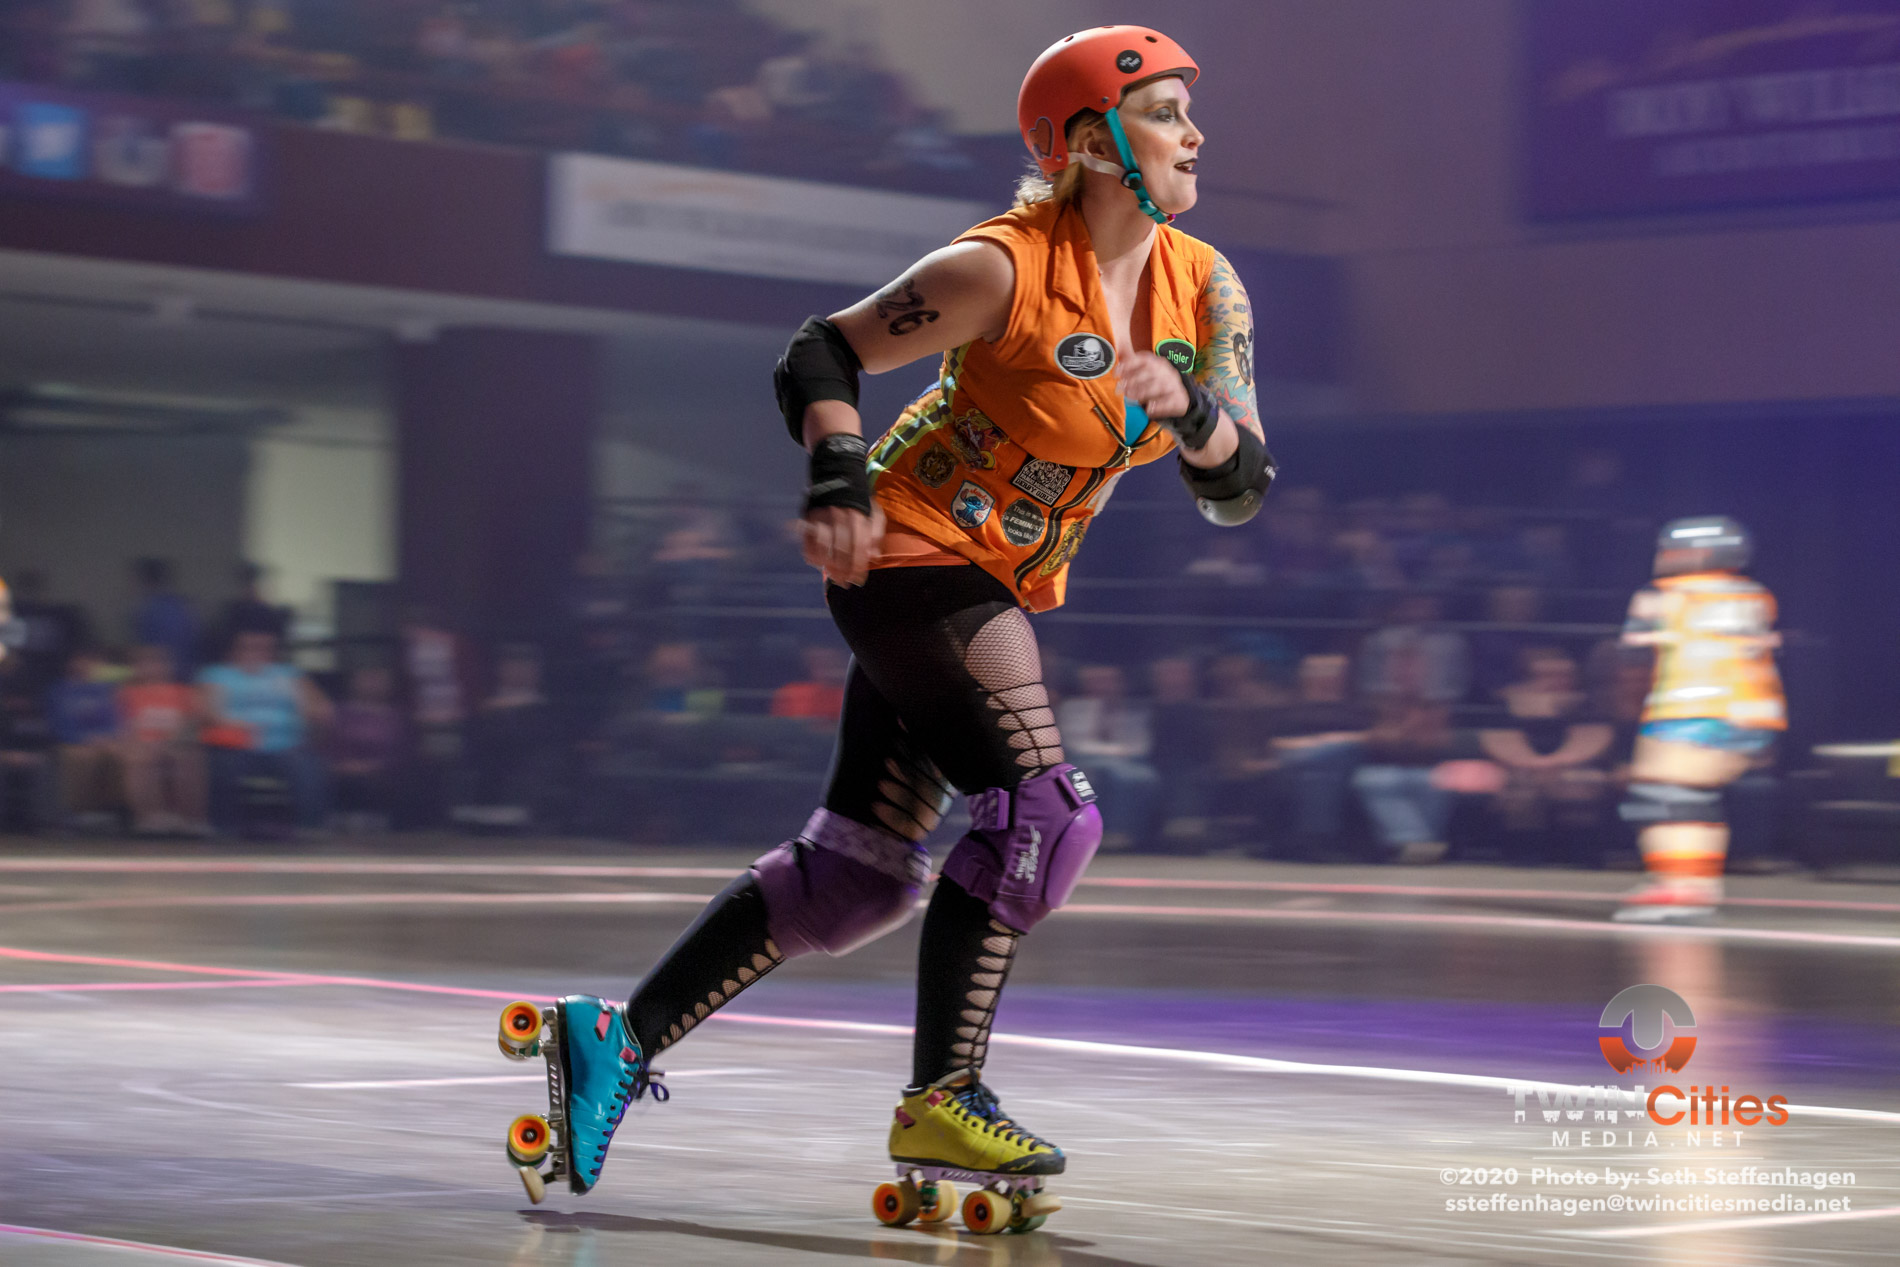 February 15, 2020 - Saint Paul, Minnesota, United States - Scenes from the Minnesota Roller Derby  home team semi-finals at the Roy Wilkins Auditorium between Atomic Bombshells and Dagger Dolls.  (Photo by Seth Steffenhagen/Steffenhagen Photography)